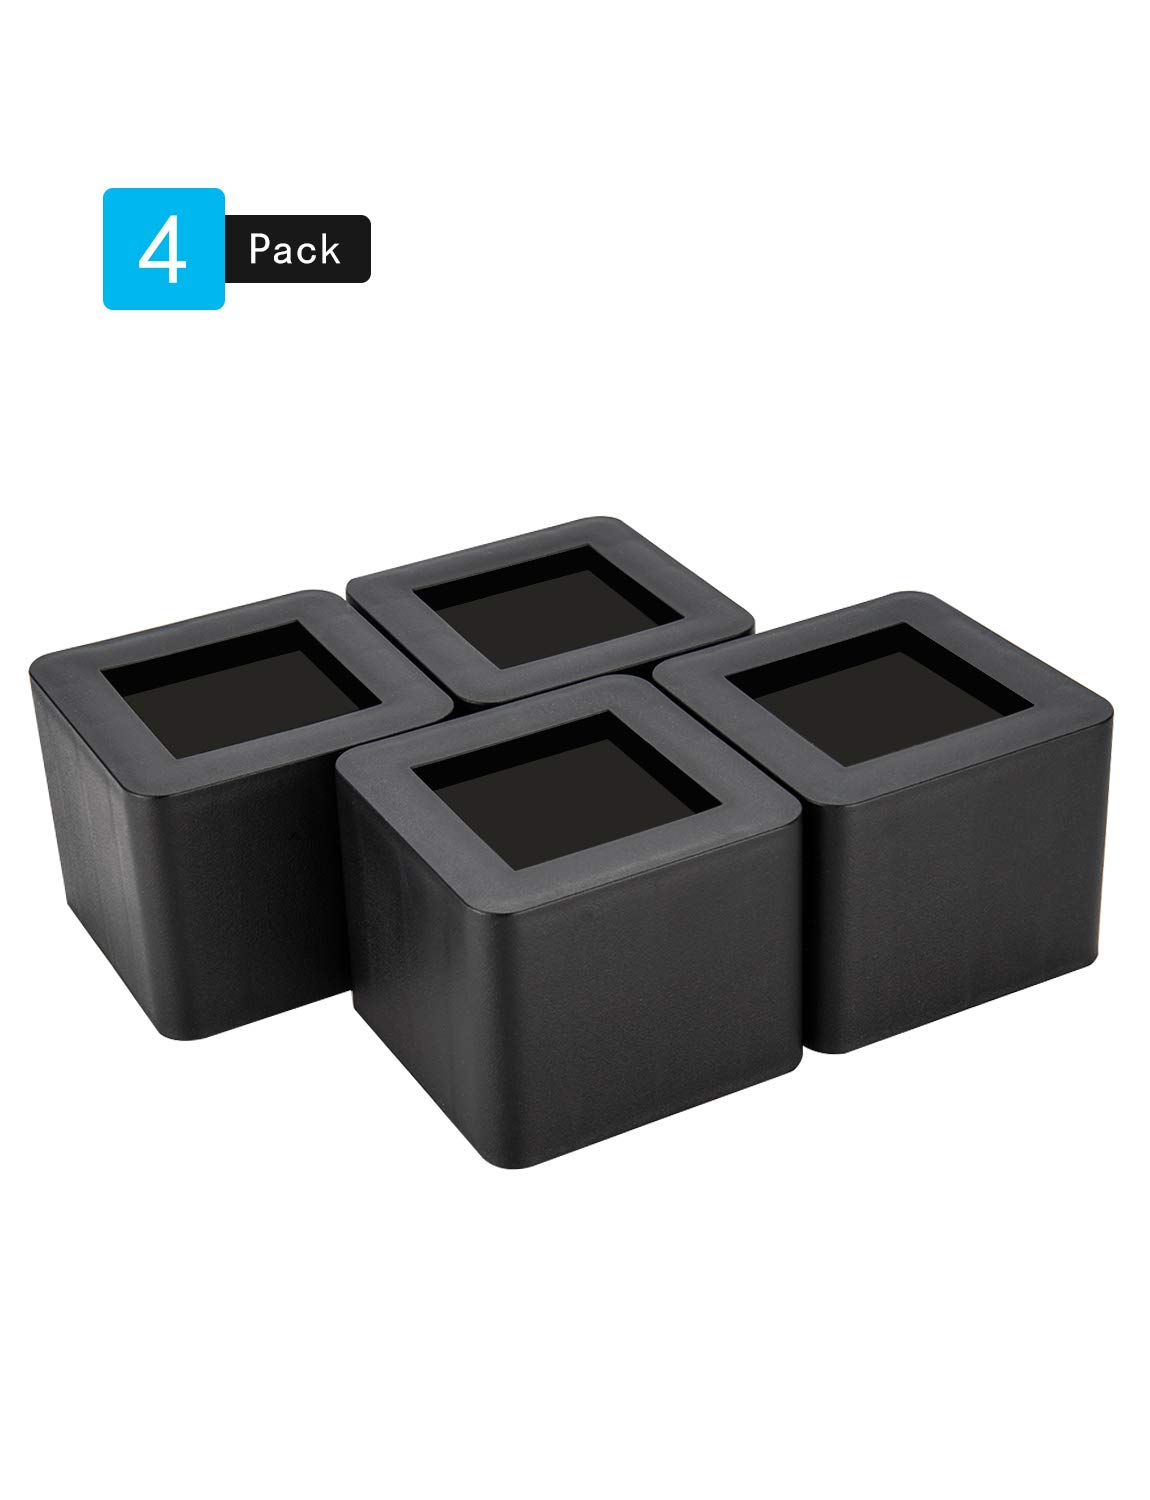 BTSD-home 3 Inch Bed Risers, Create Additional 3 Inch Height or Storage, Heavy Duty Furniture Risers